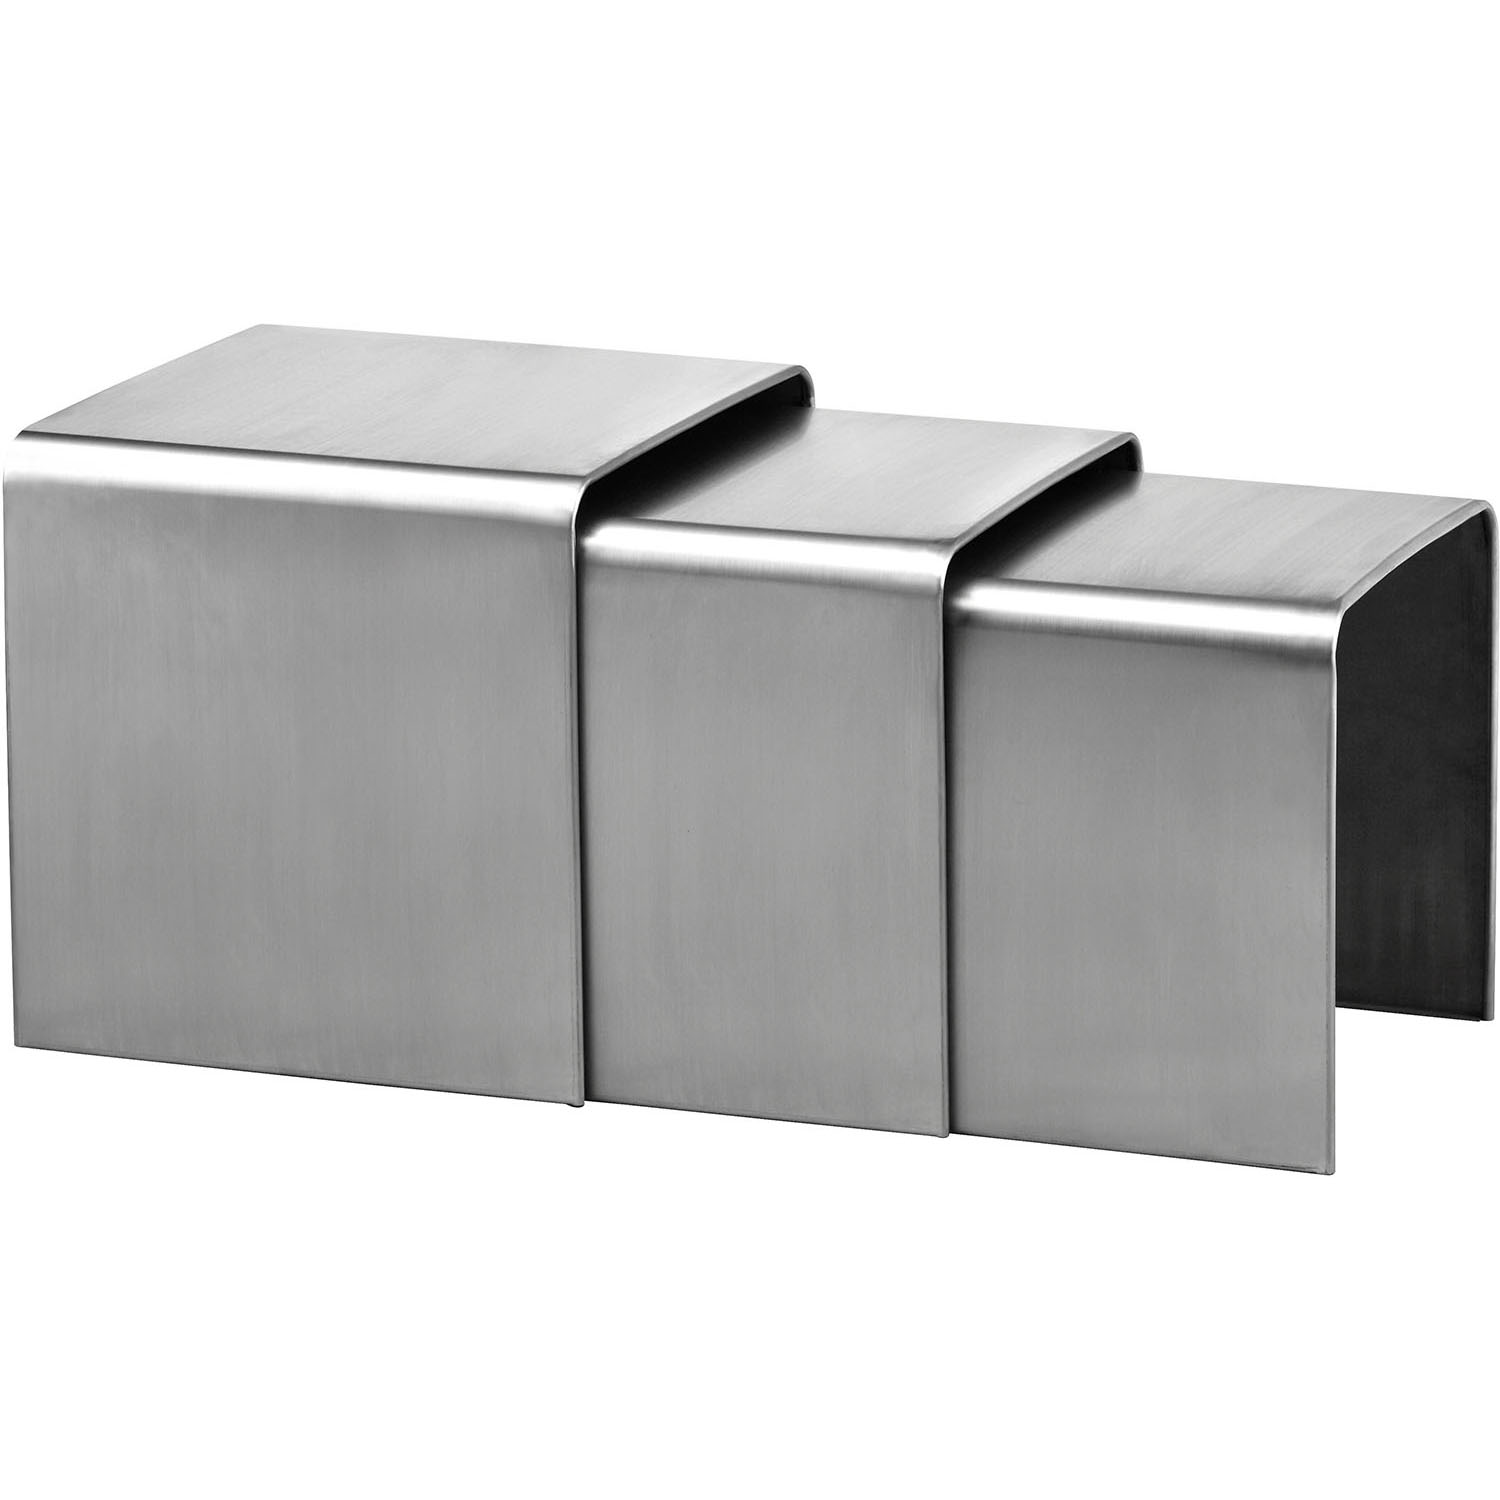 Exquisite Modern Aura Nesting Tables Brushed Stainless Steel Product Photo